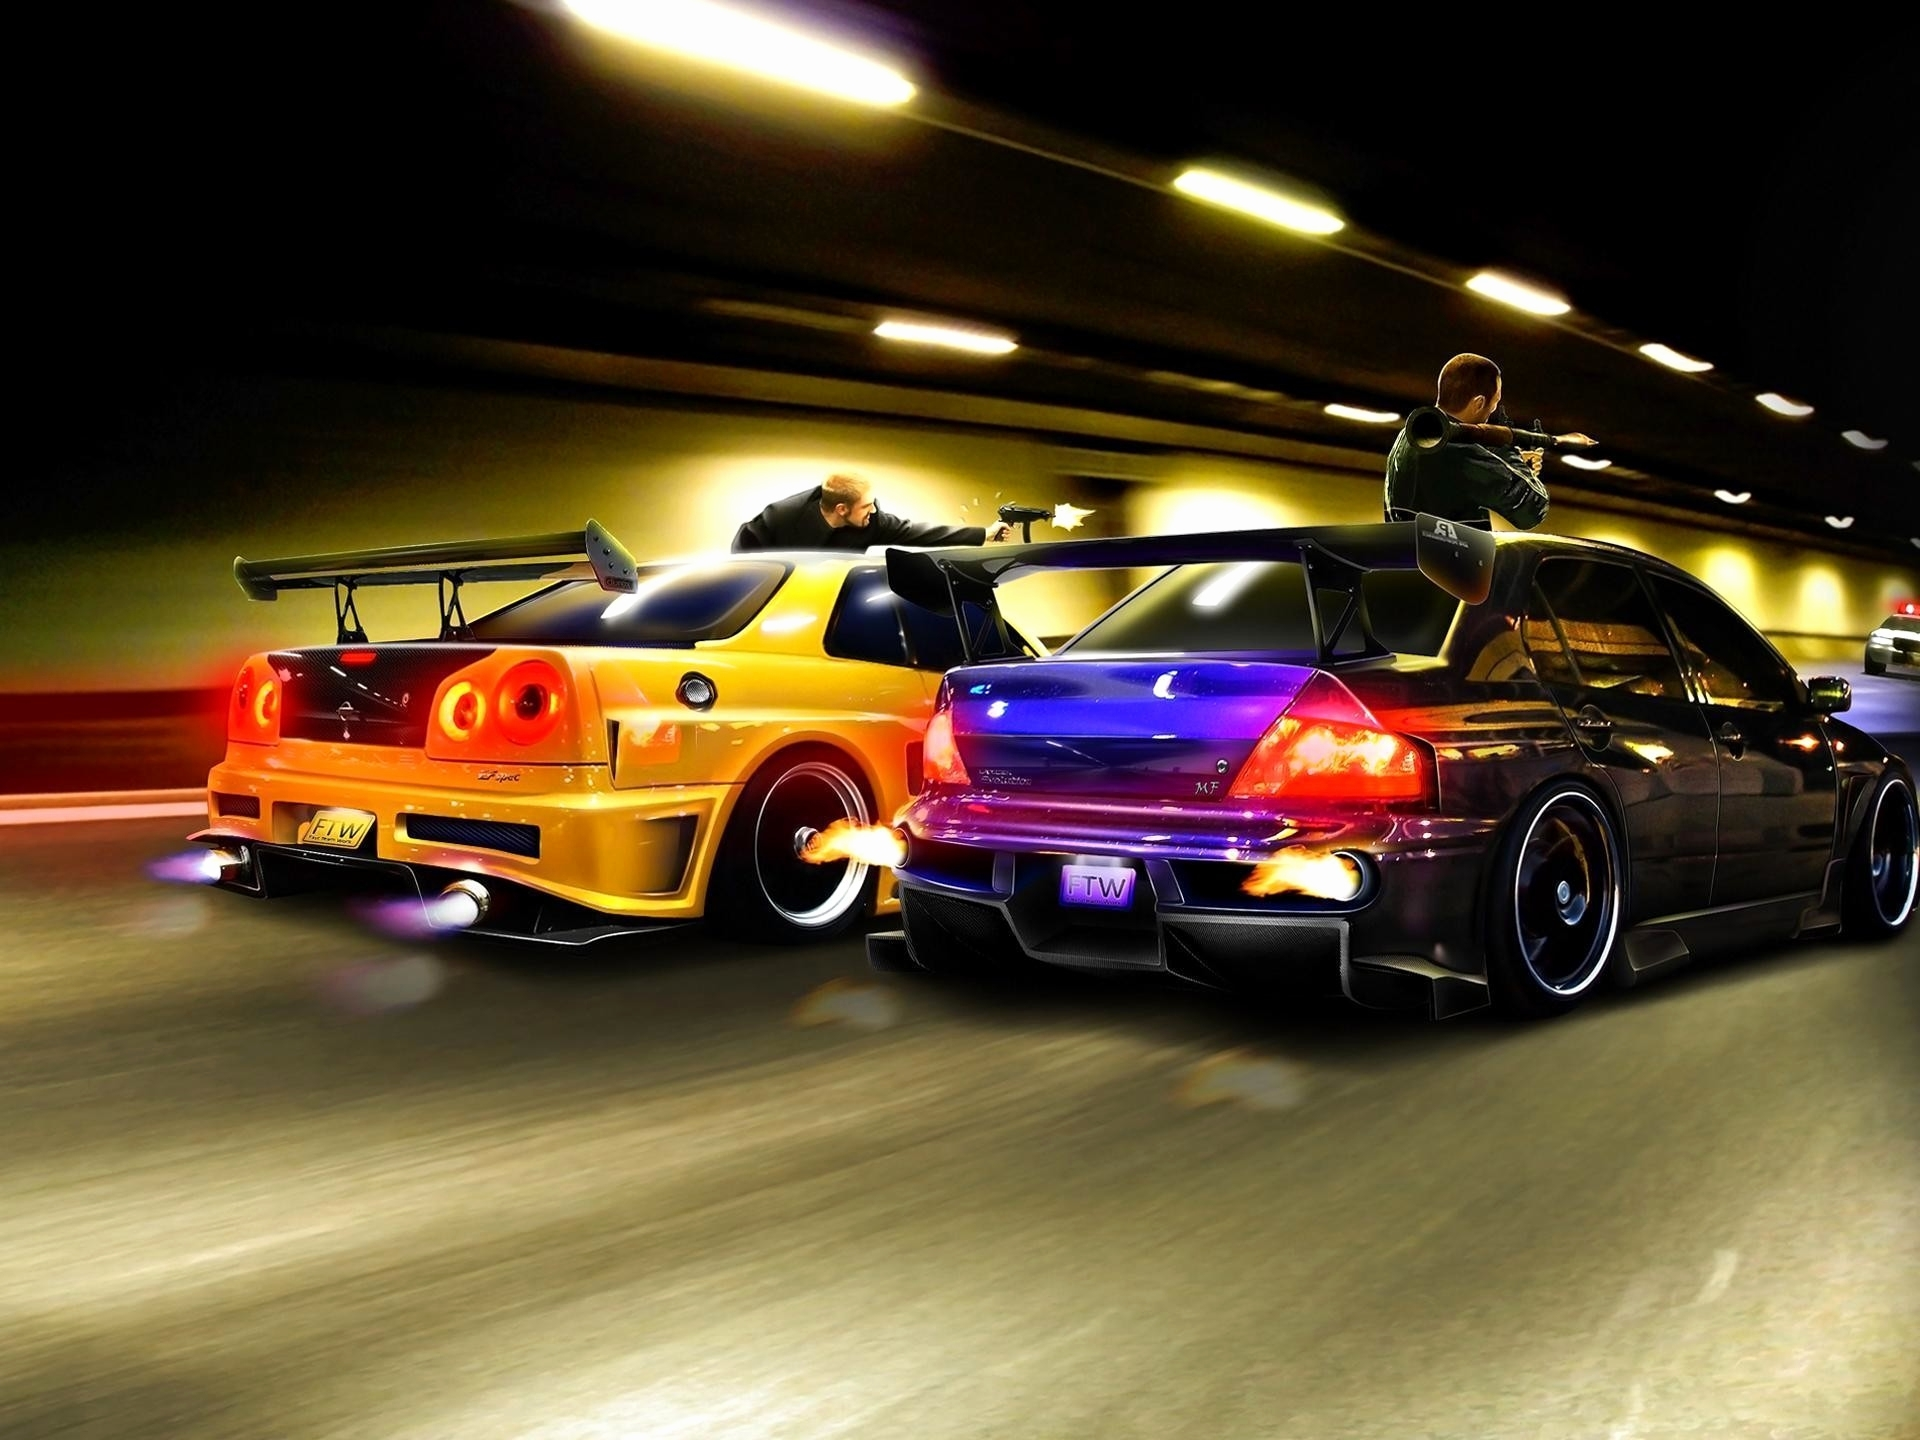 racing cars wallpaper lovely street race cars wallpapers ·â' – car